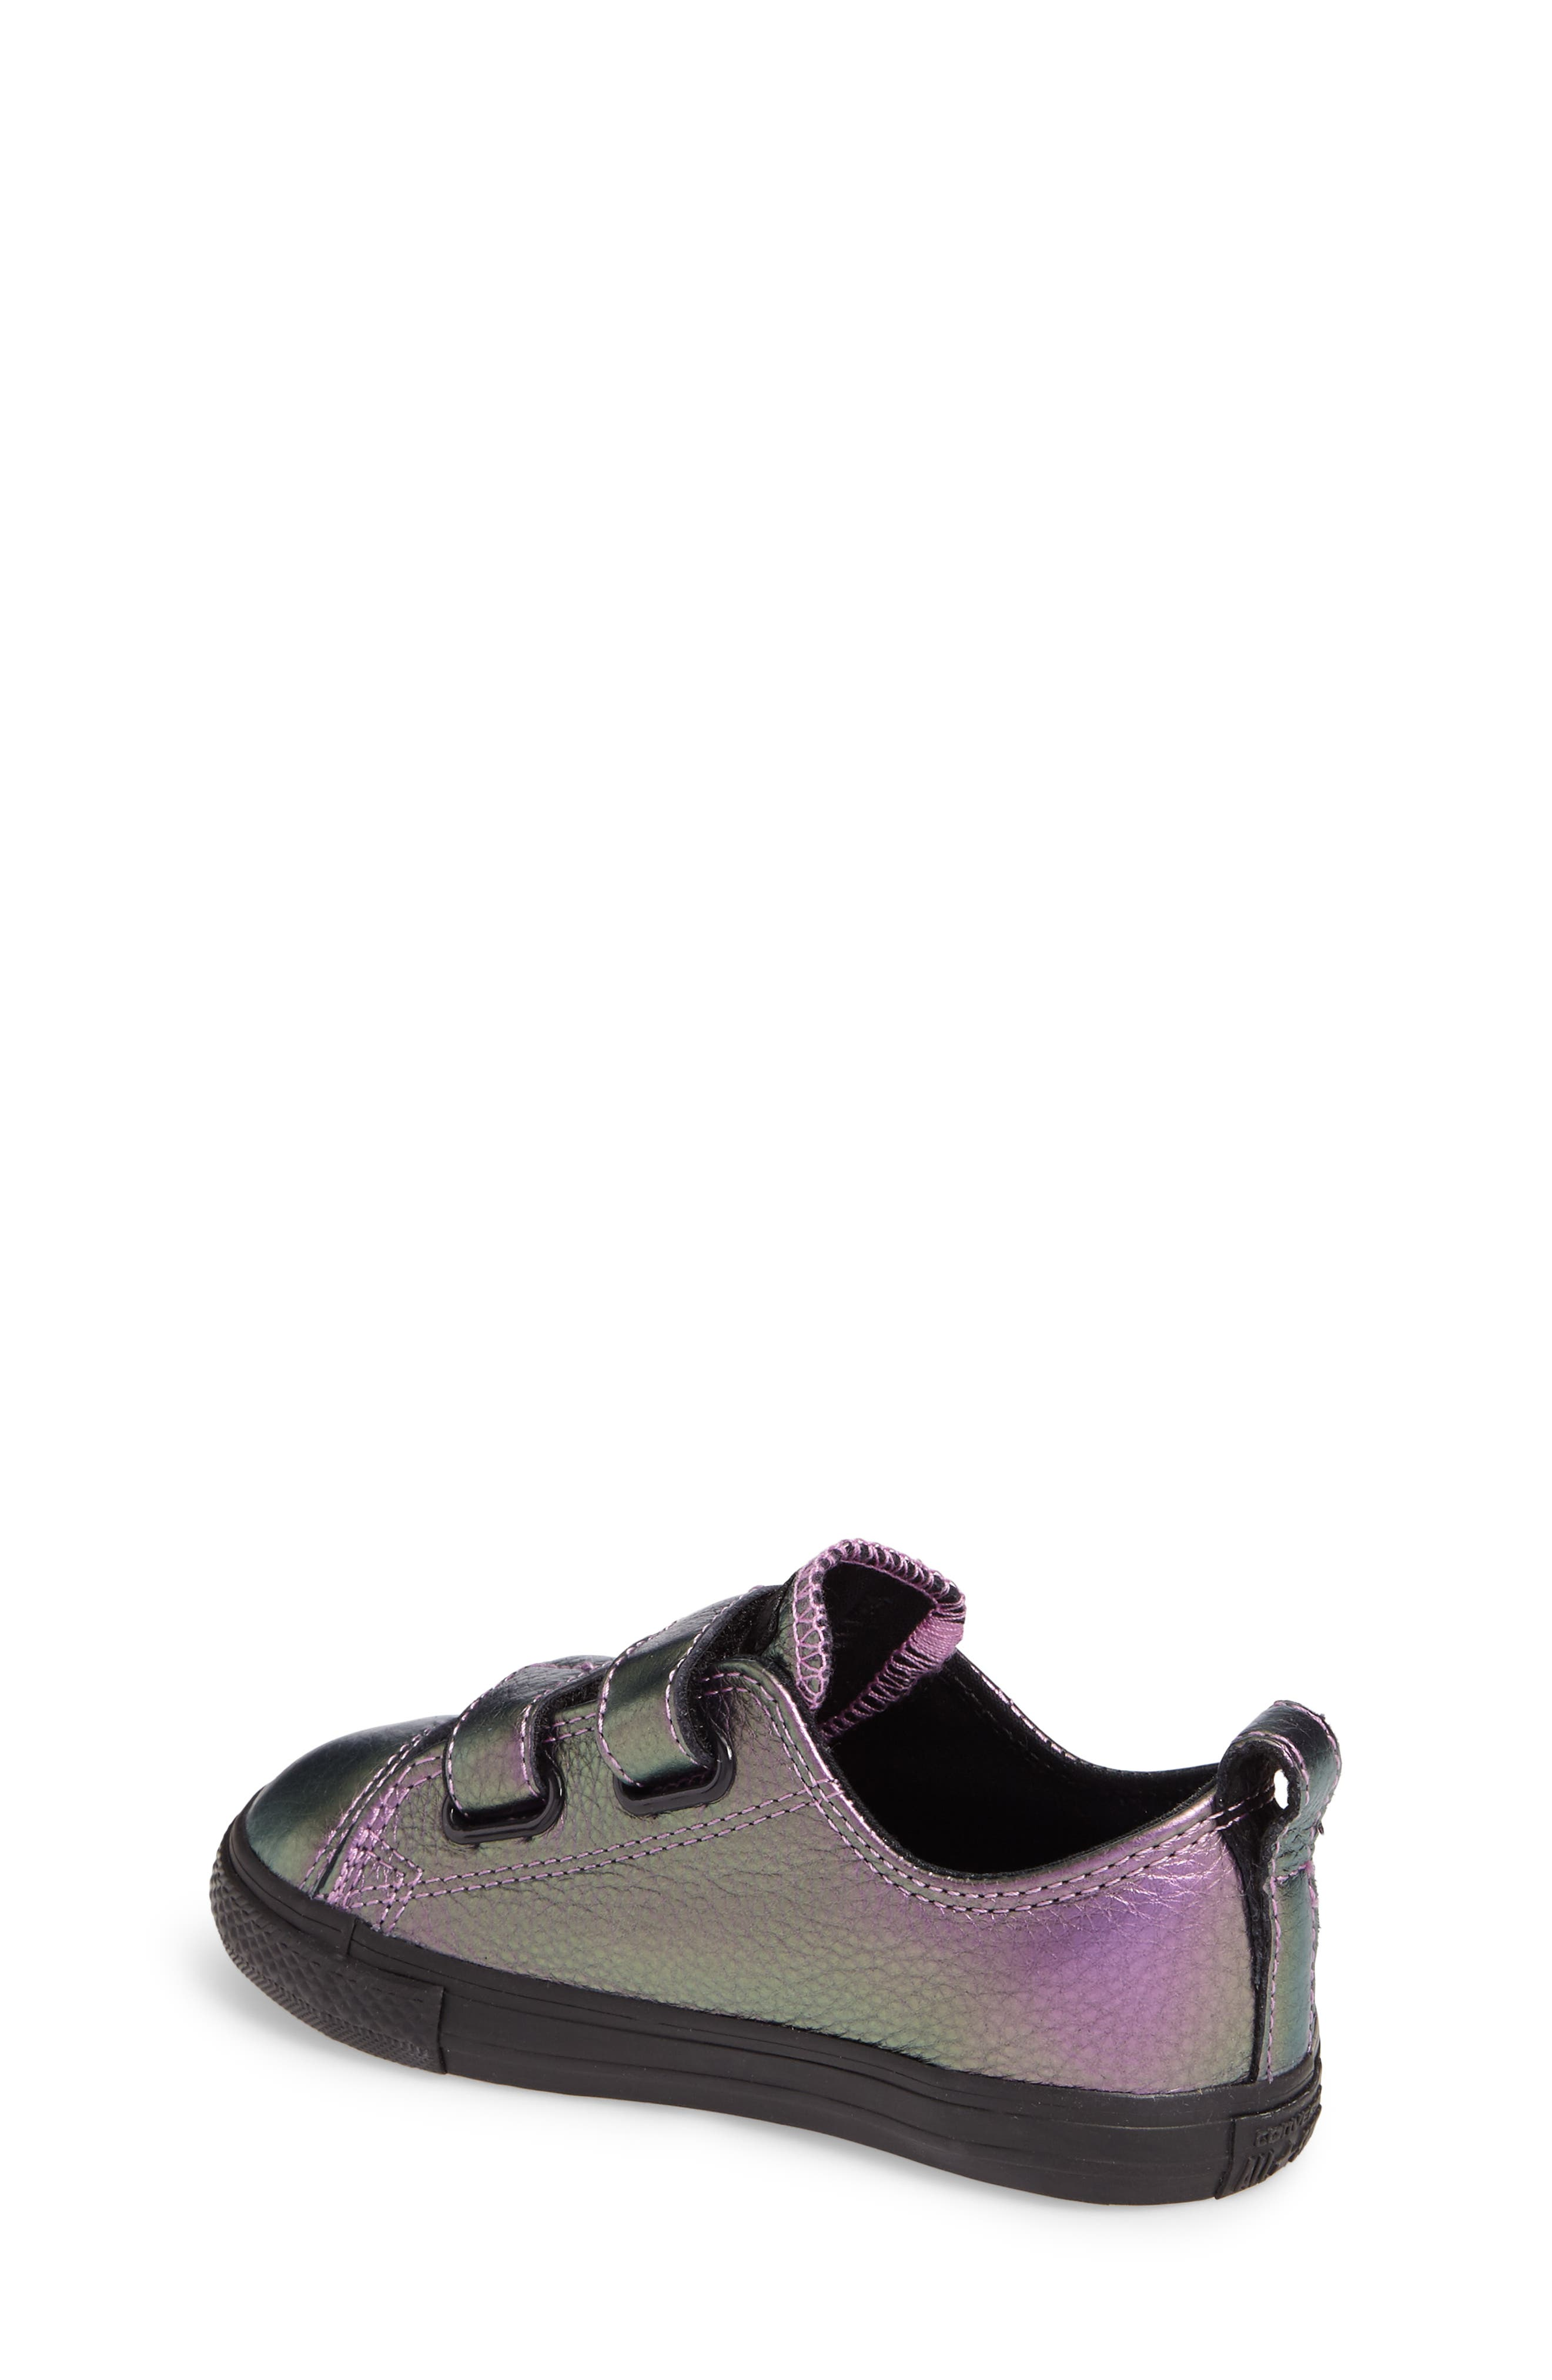 Chuck Taylor<sup>®</sup> All Star<sup>®</sup> Iridescent Leather Low Top Sneaker,                             Alternate thumbnail 2, color,                             500